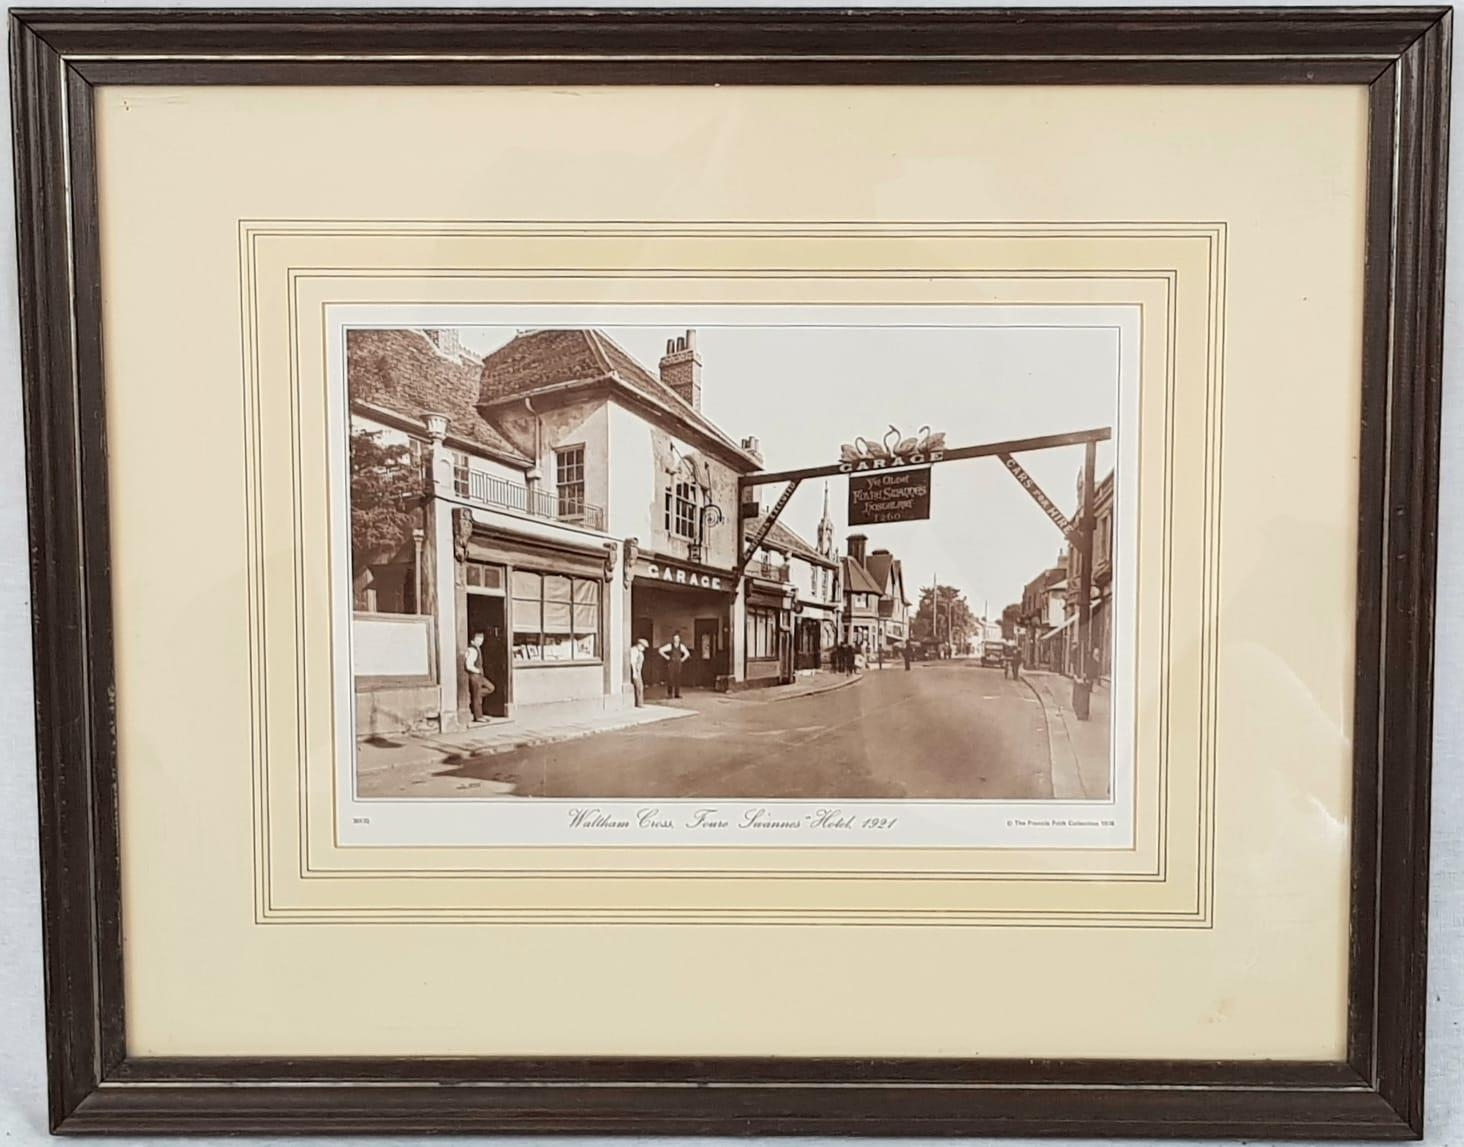 A Print of Waltham Cross, Four Swans Hotel from 1921. From the Francis Frith Collection 1978. 50 x